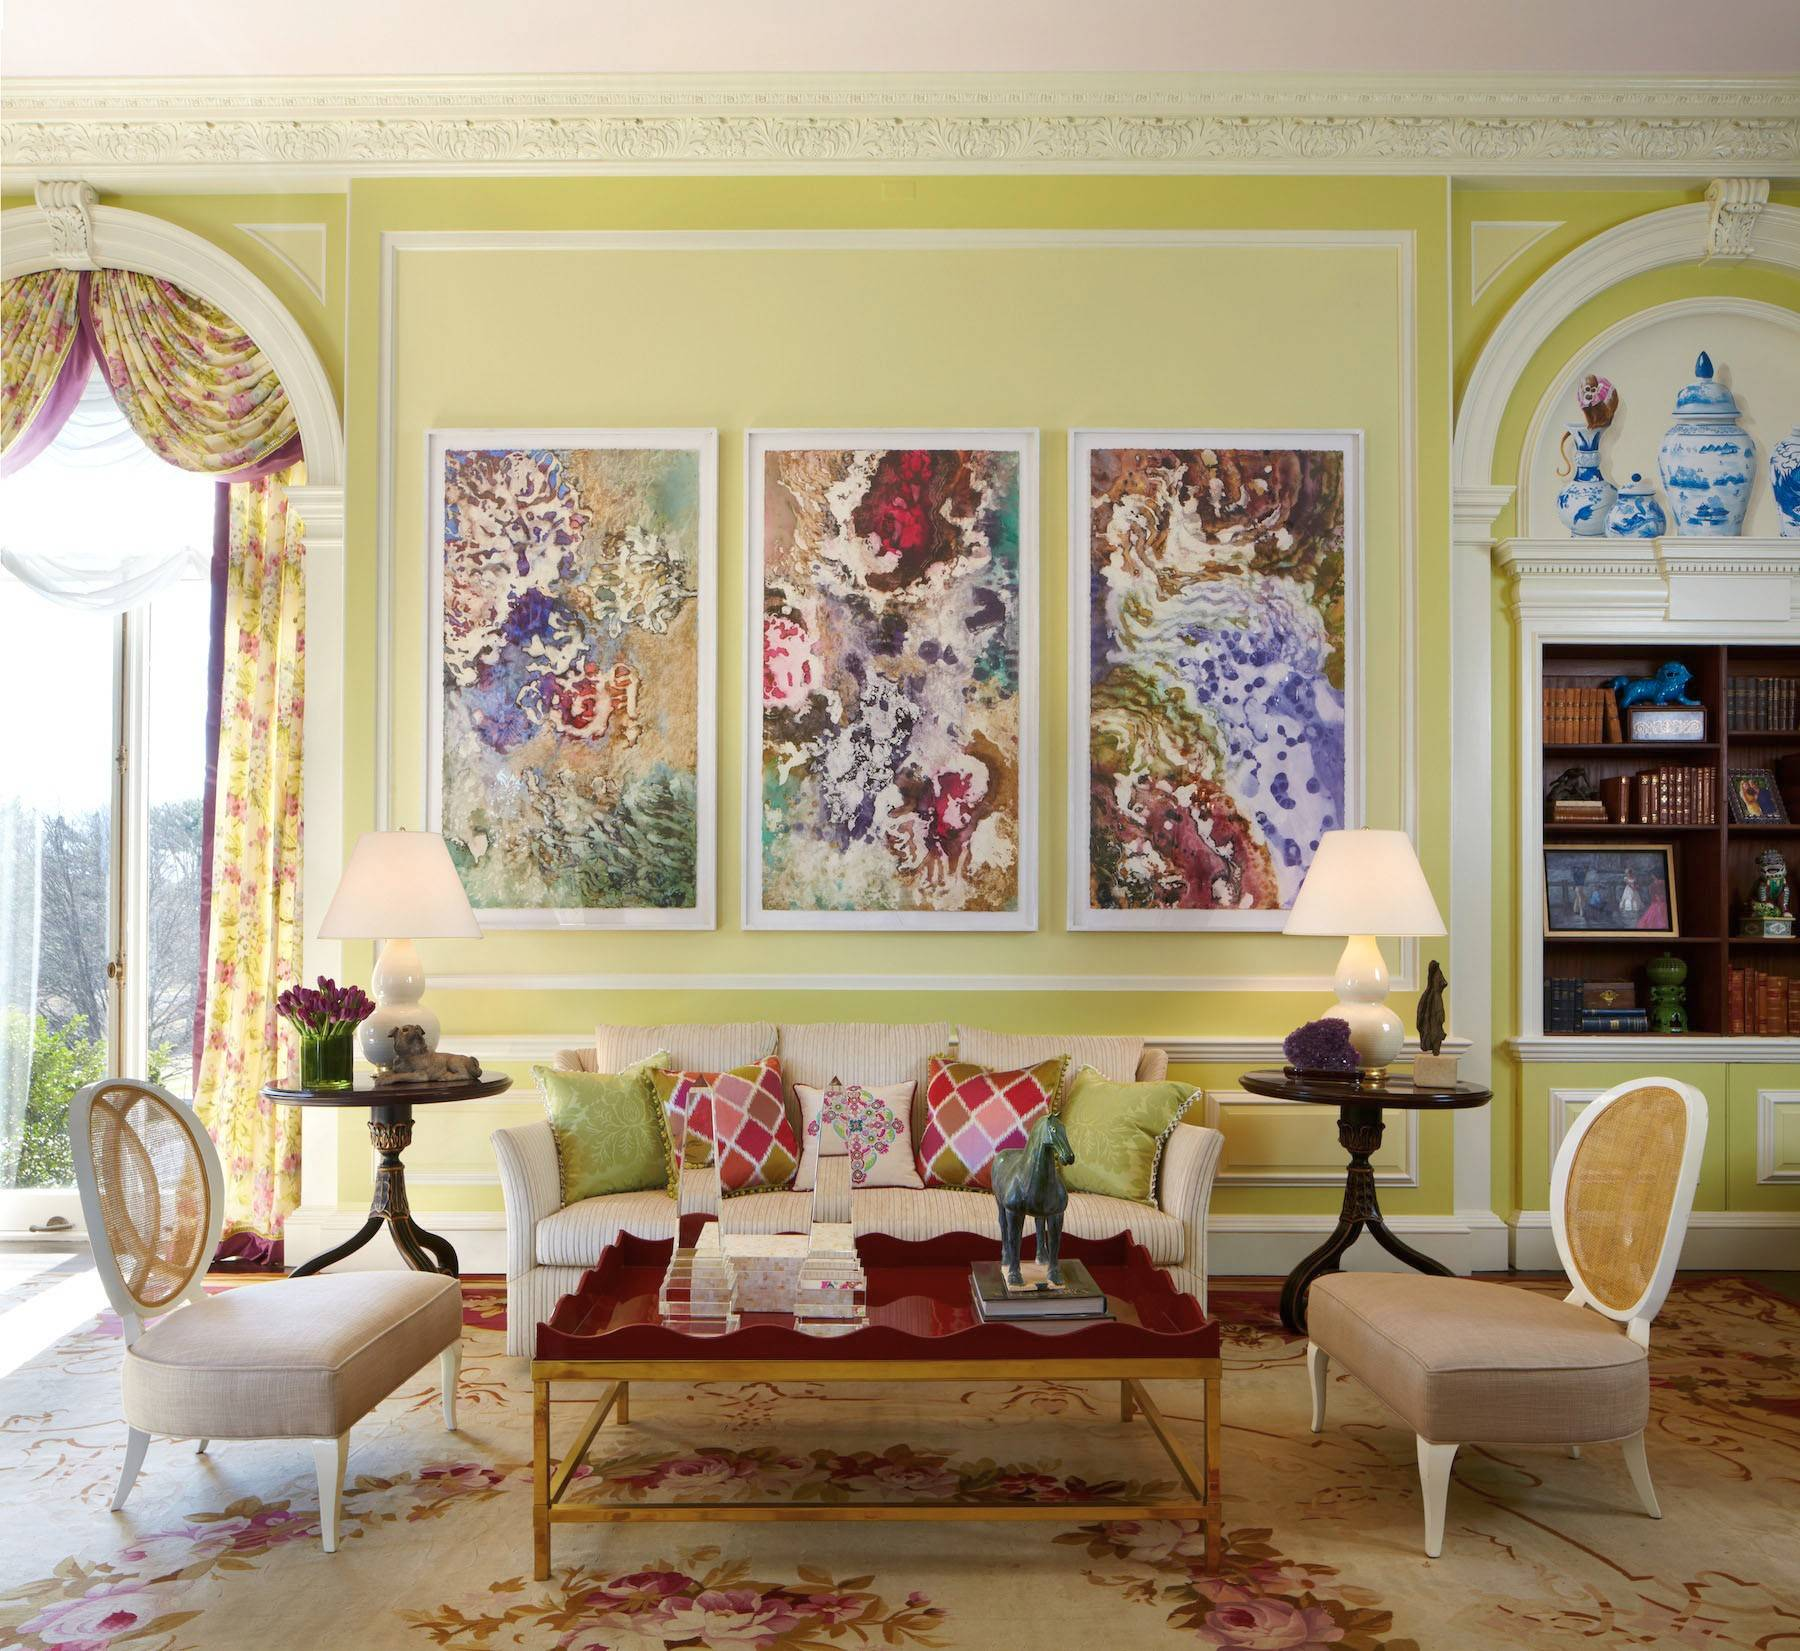 How to update a traditional setting: Blend contemporary ideas and art, then shake things up with a bit of whimsy.